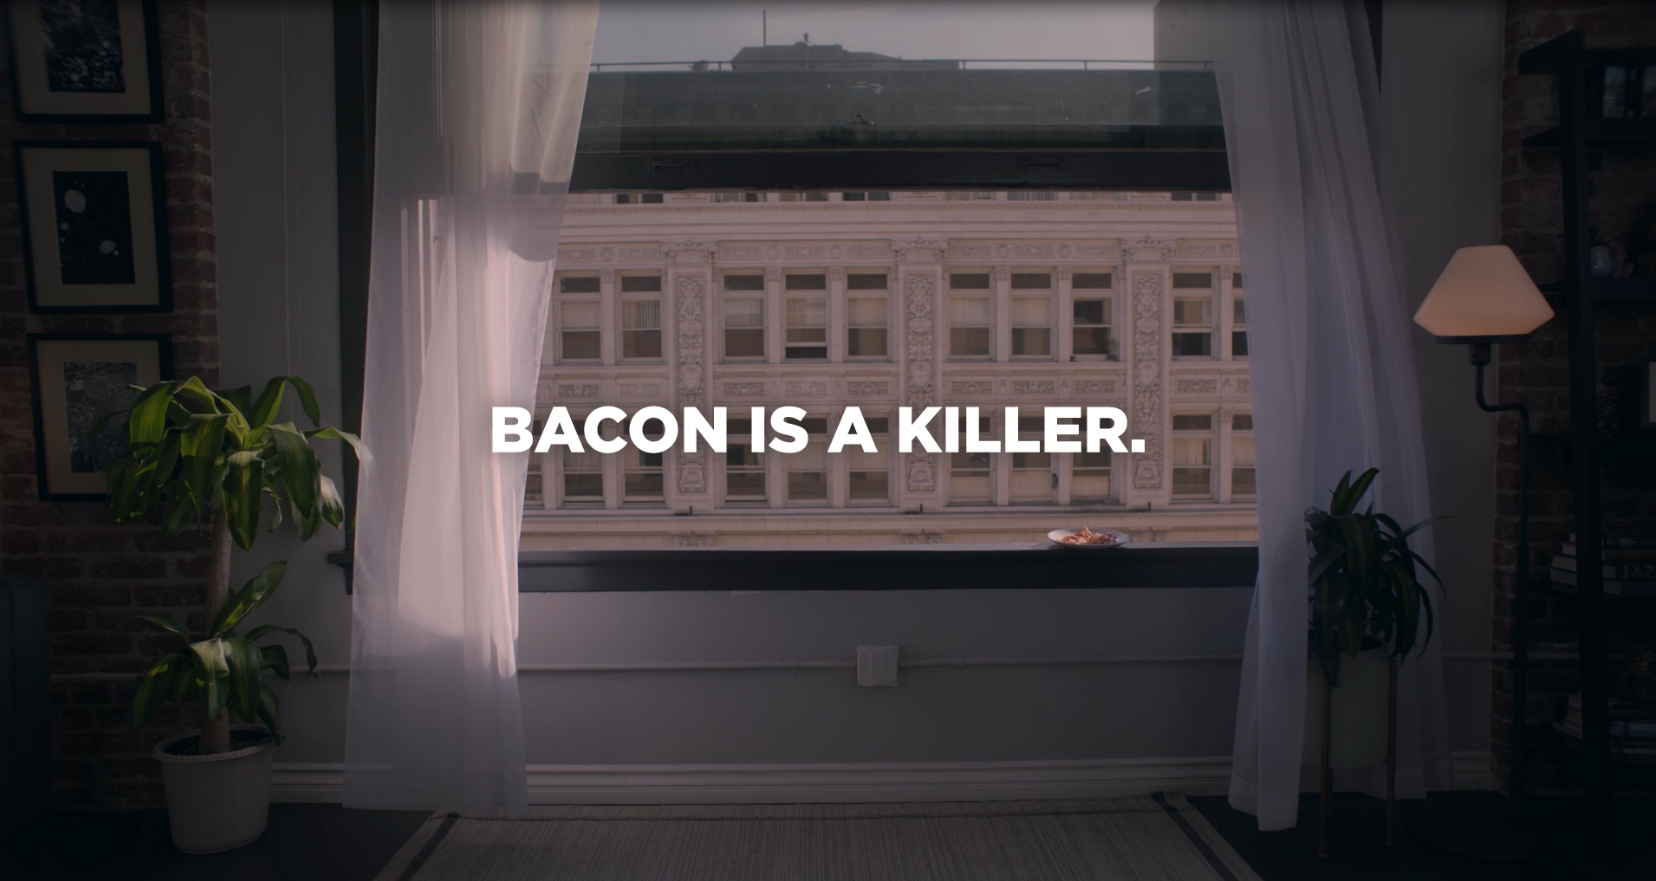 Hard Hitting Tv Ad Targets Cancer Causing Bacon In 18 States Most Impacted By Colon Cancer Deaths